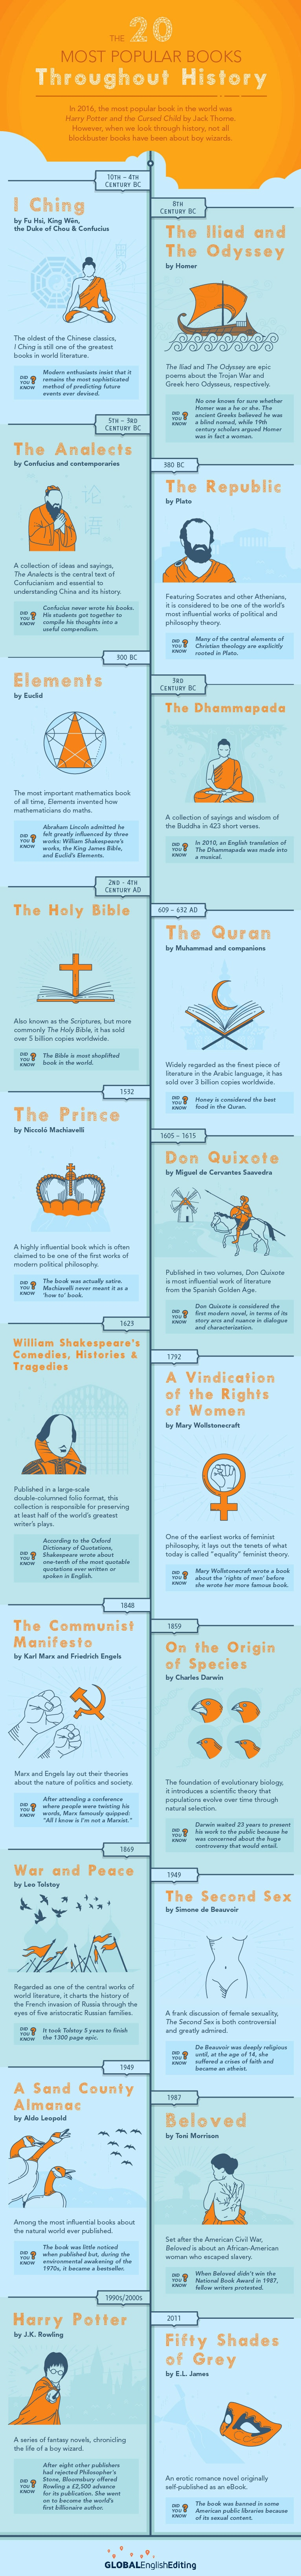 Infographic: The 20 Most Popular Books Throughout History Infographic